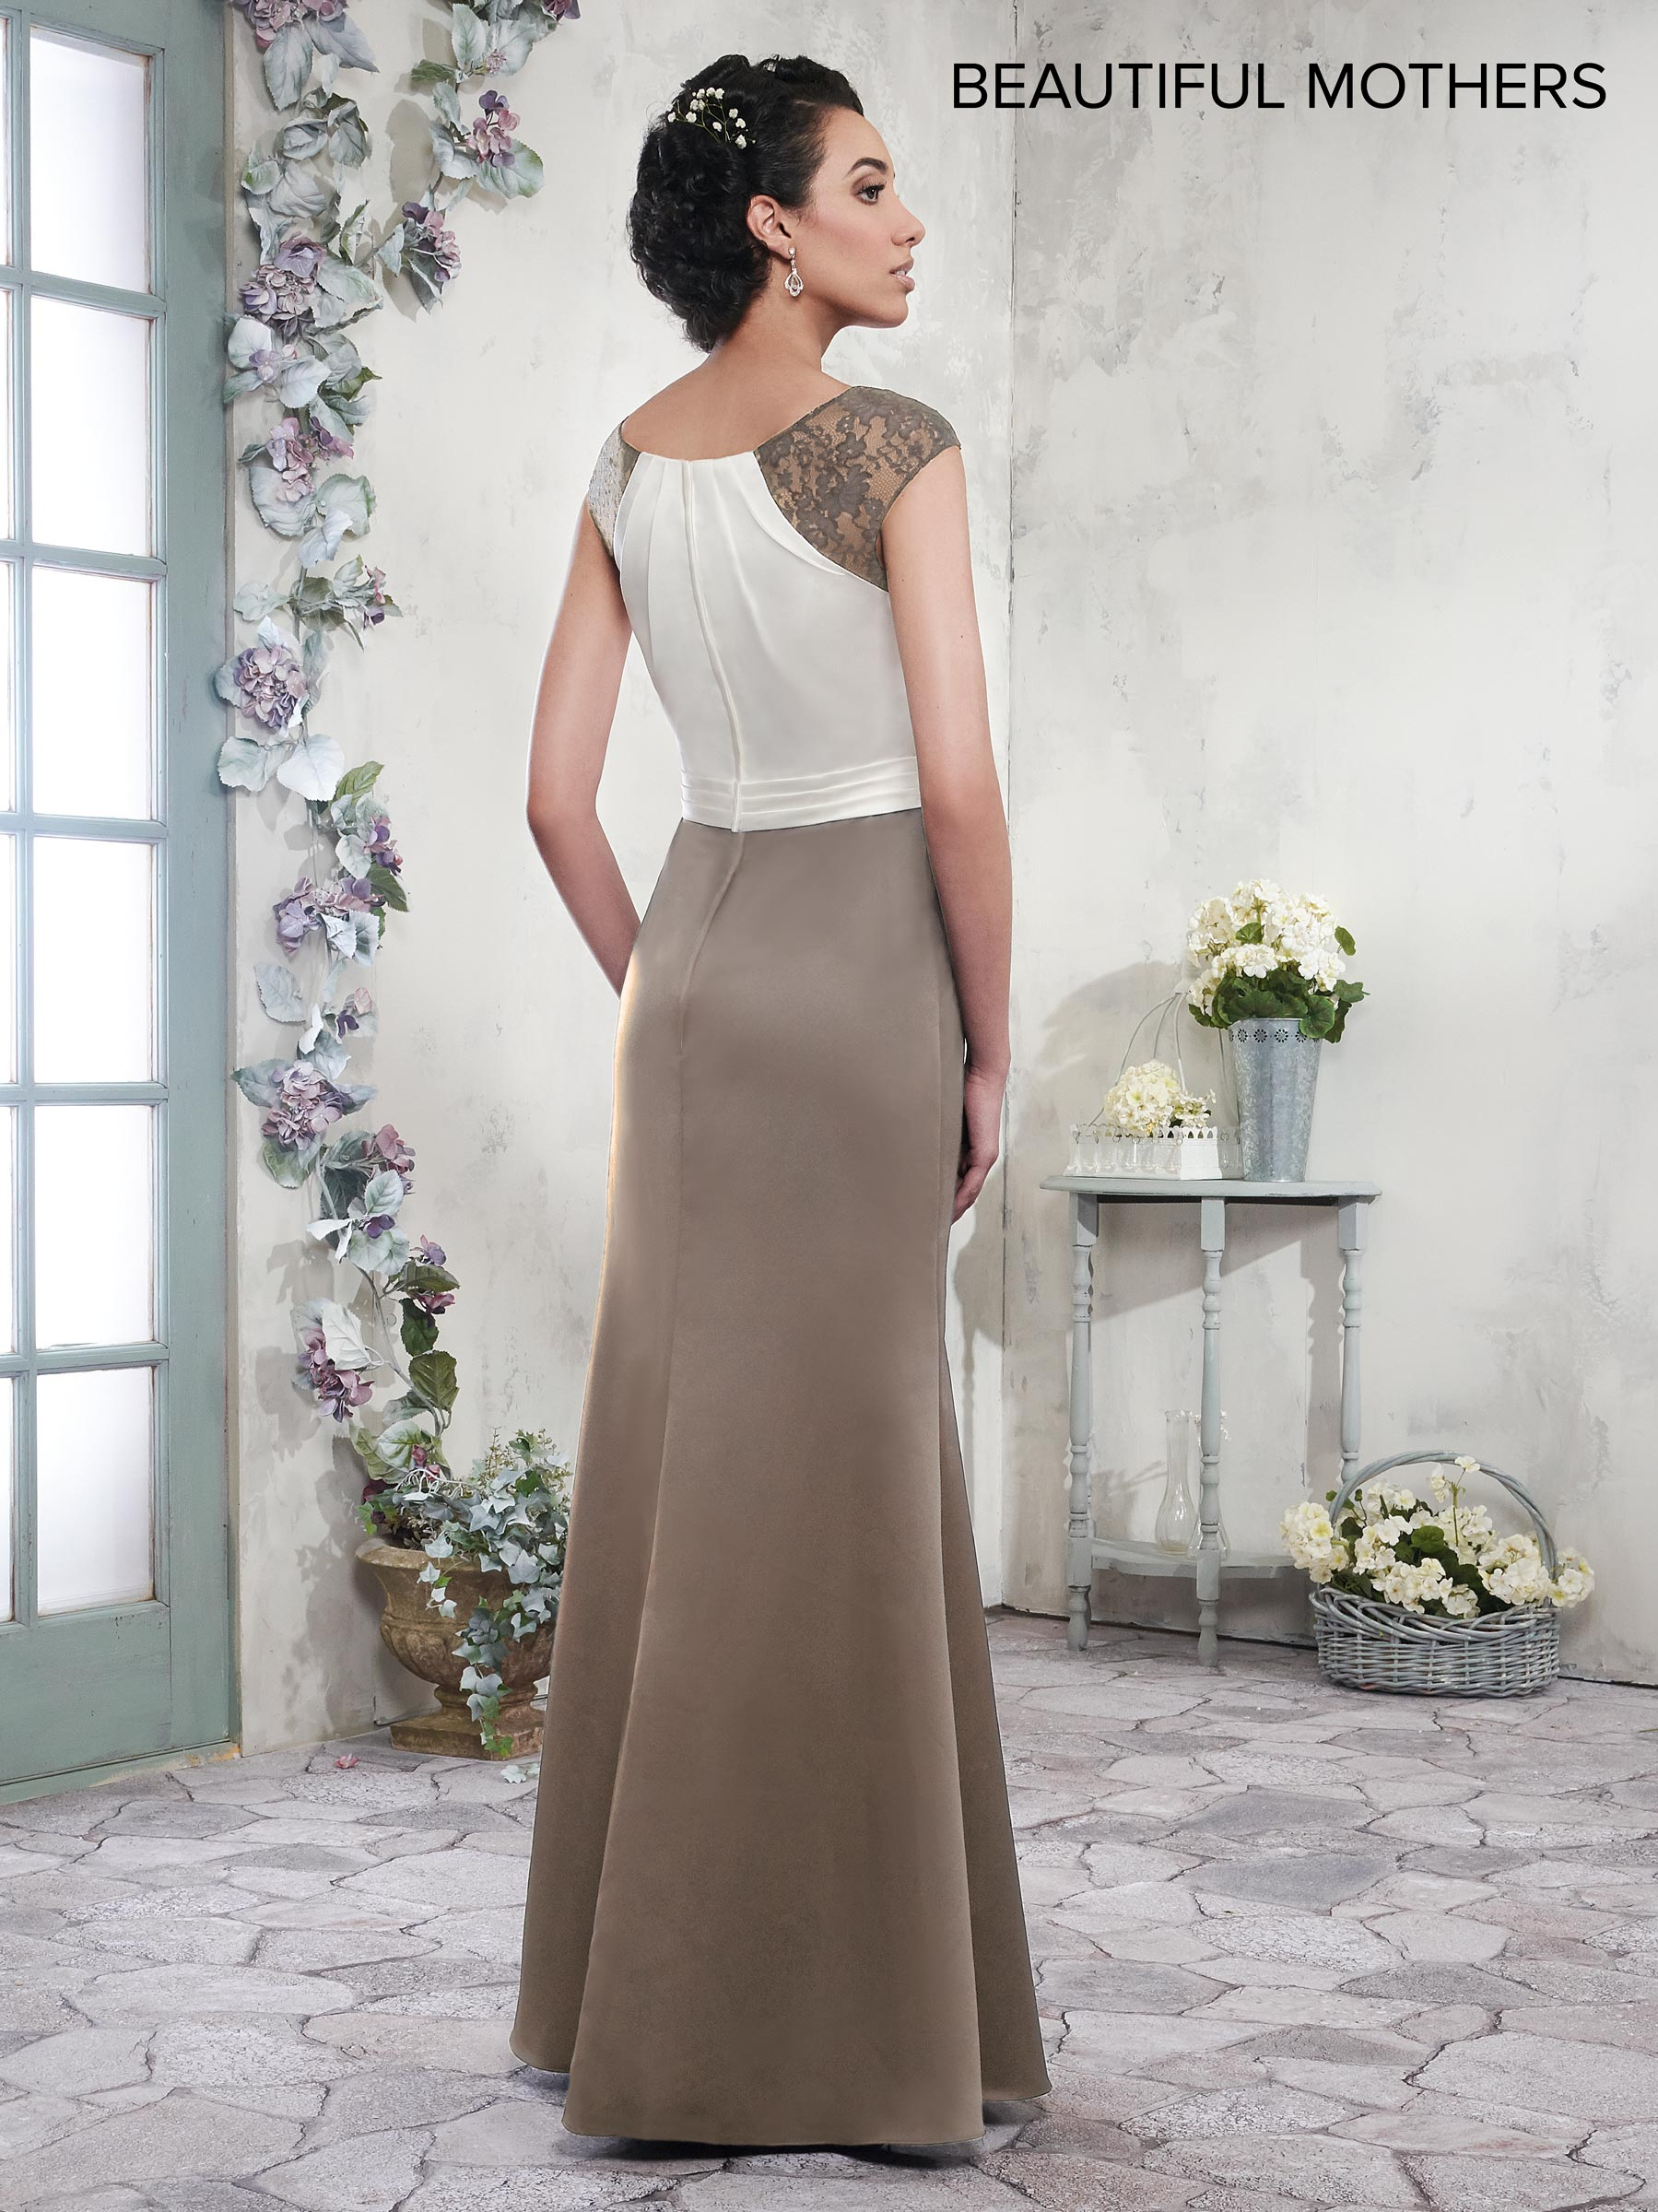 Mother Of The Bride Dresses | Beautiful Mothers | Style - MB8004